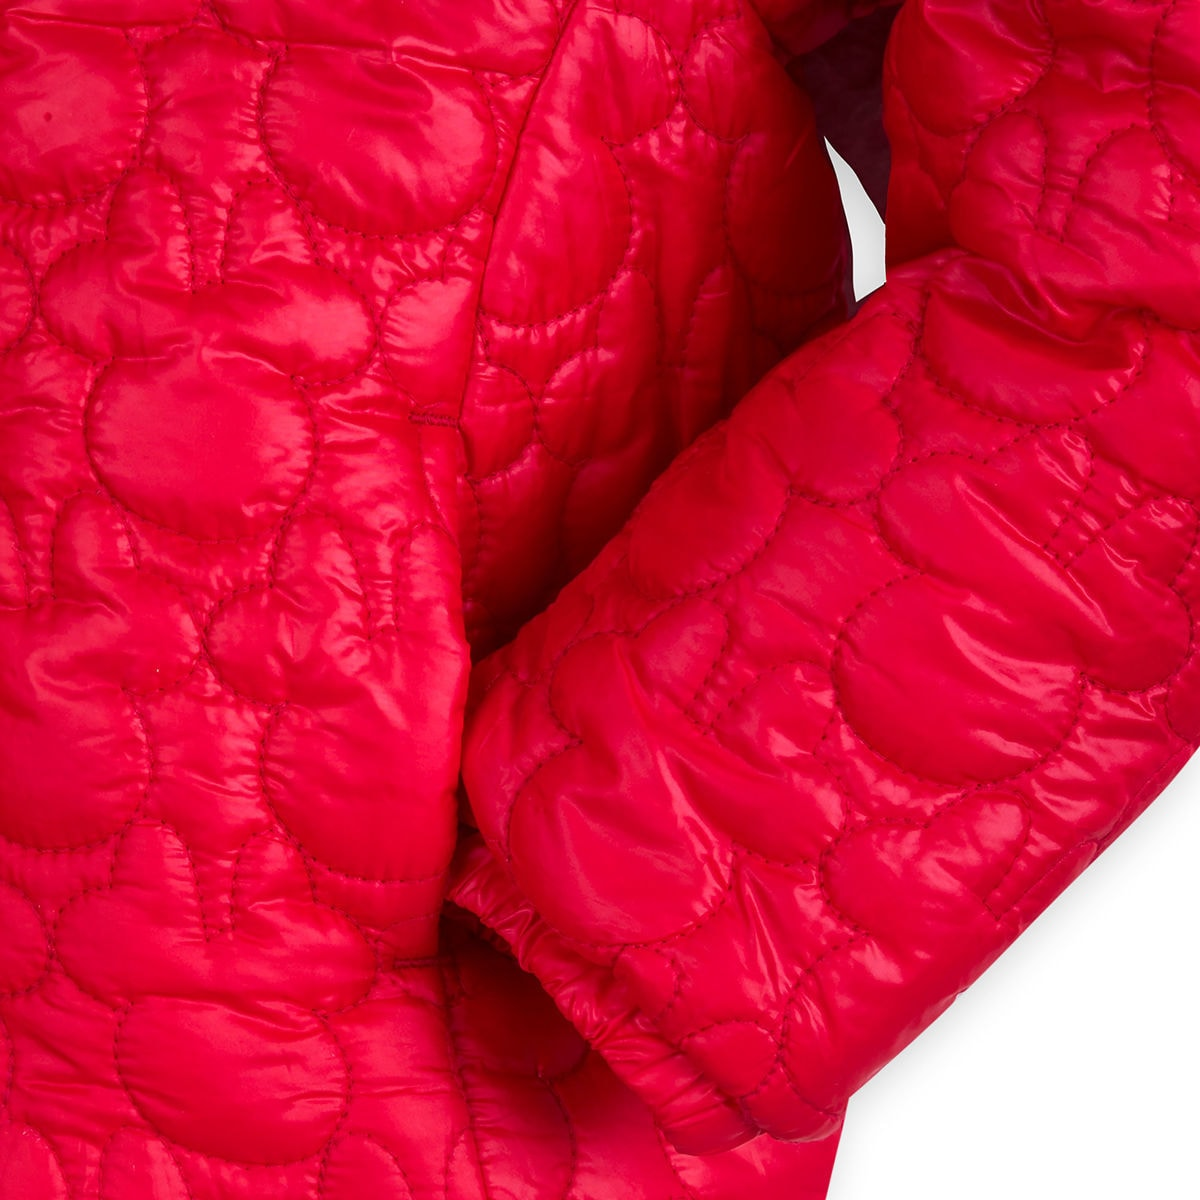 04a306e03 Minnie Mouse Bow Lightweight Puffy Jacket for Kids - Personalizable ...